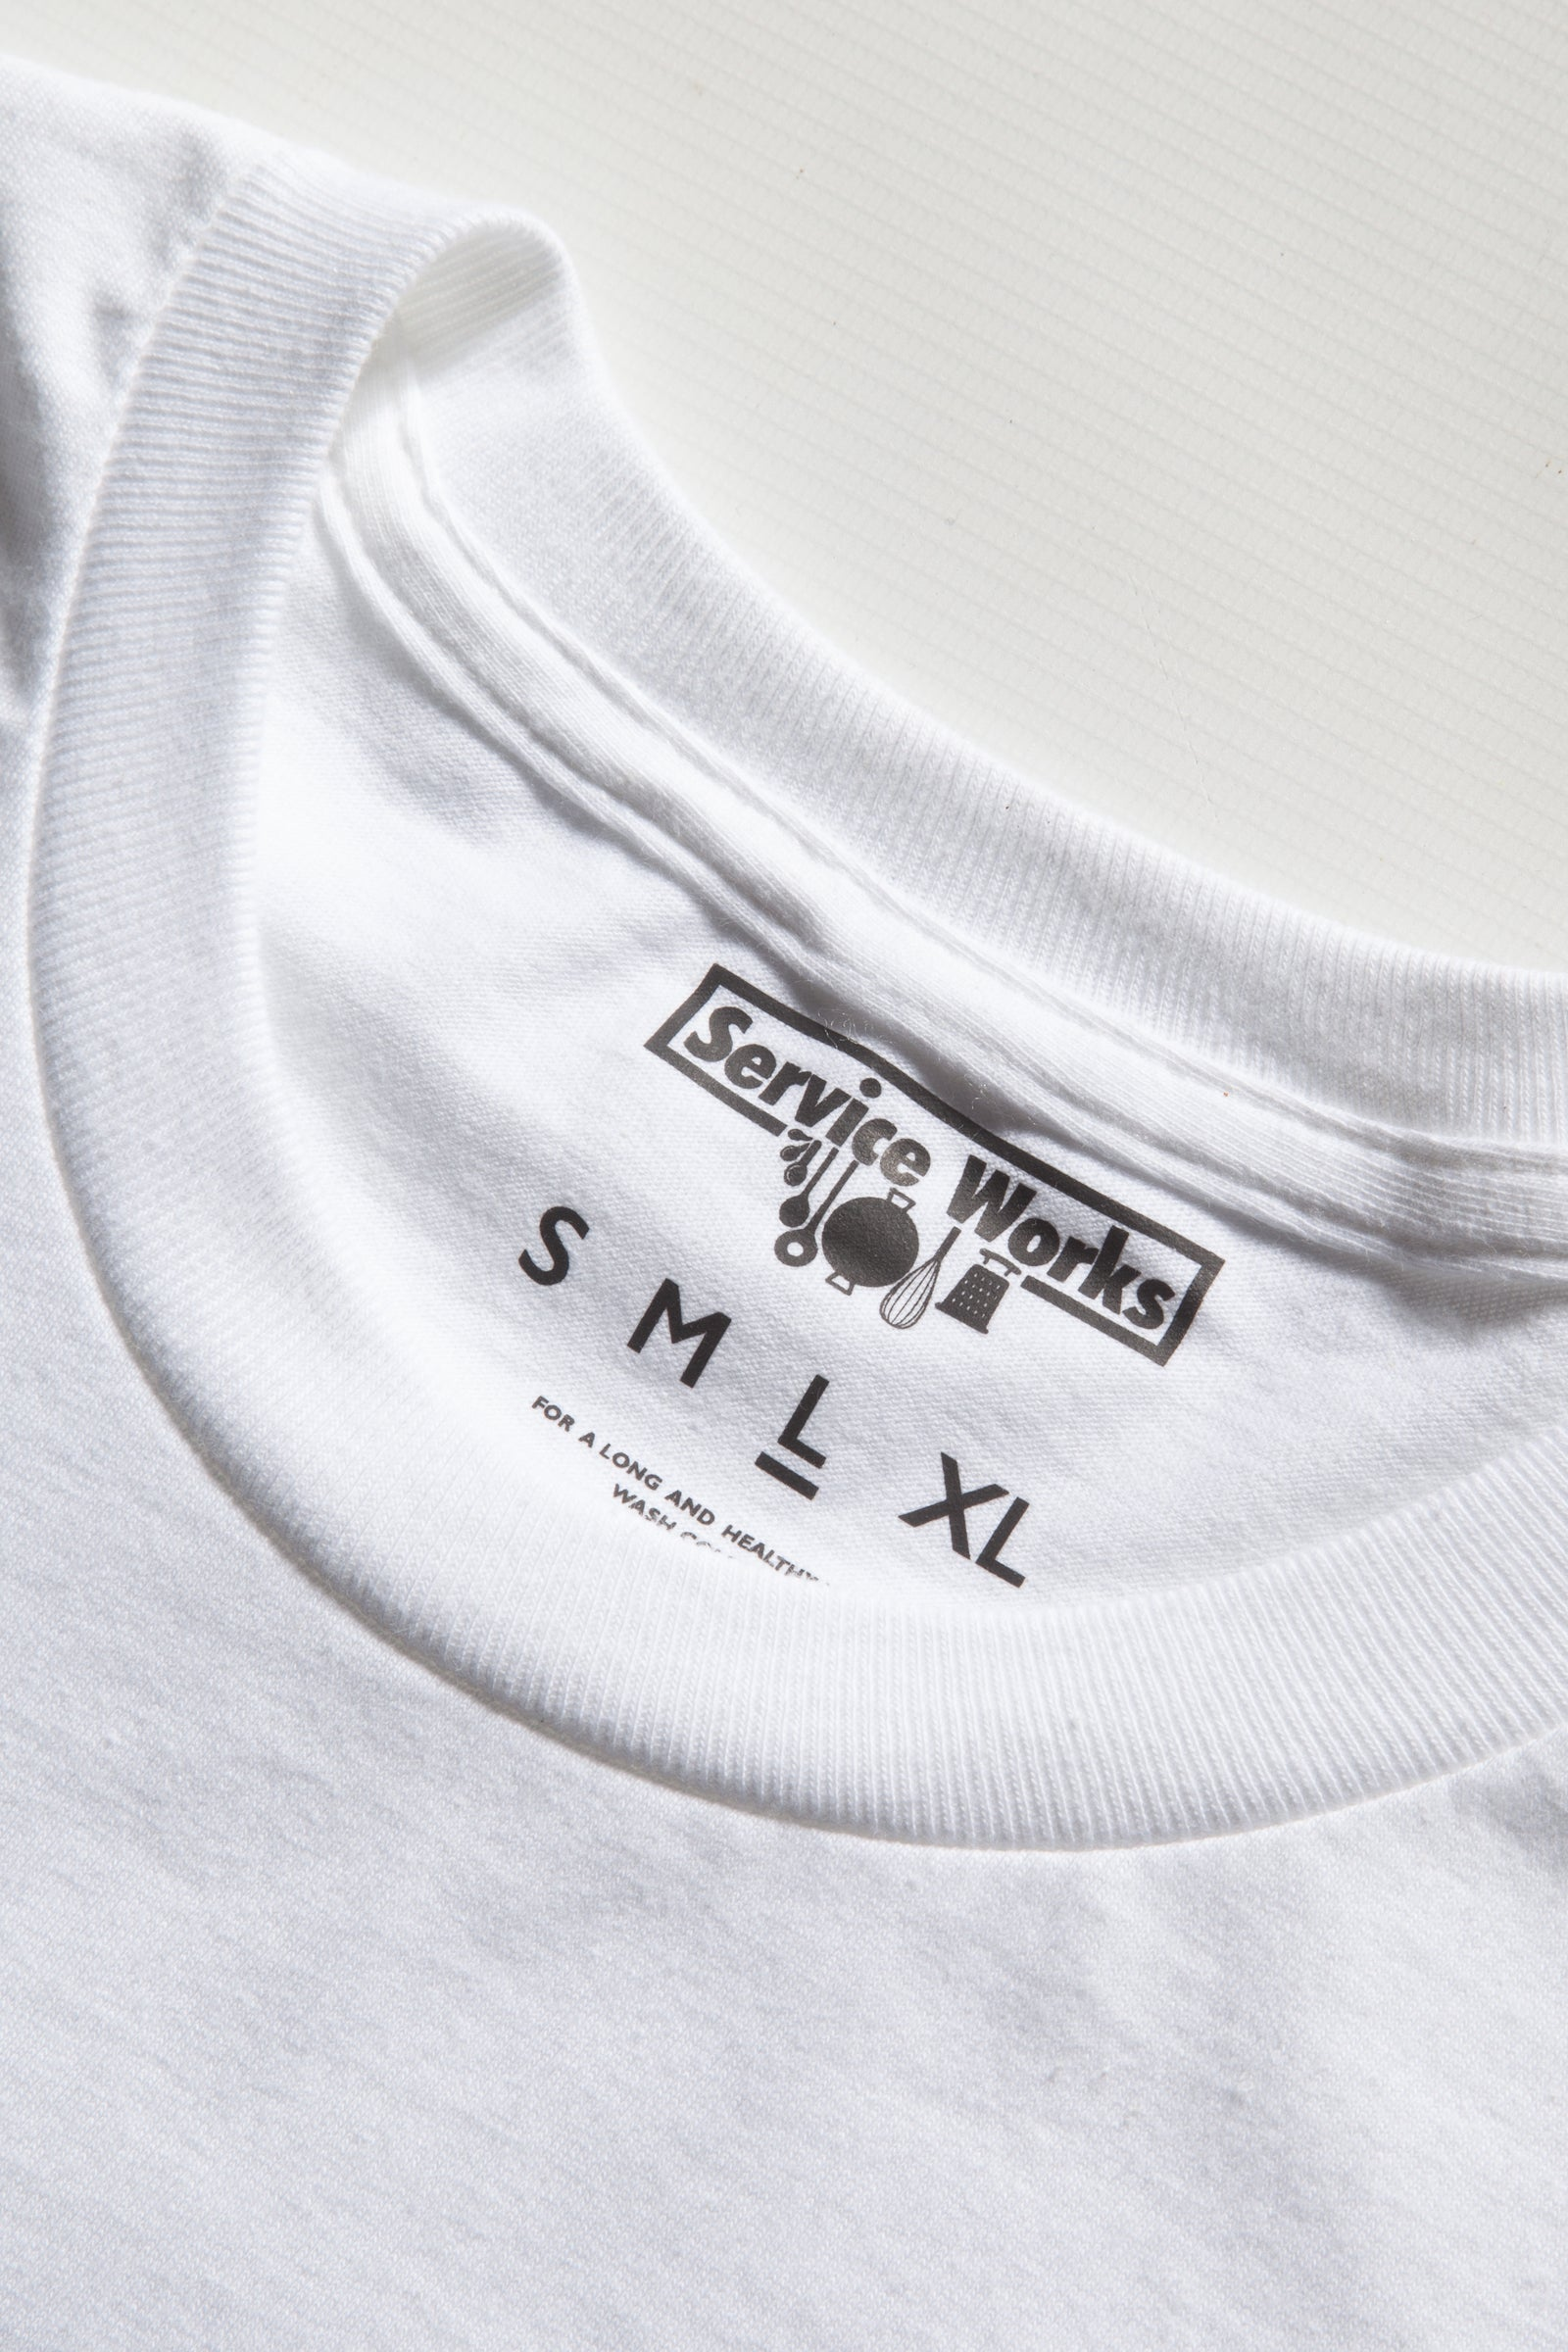 Service Works - Sail Away Tee - White